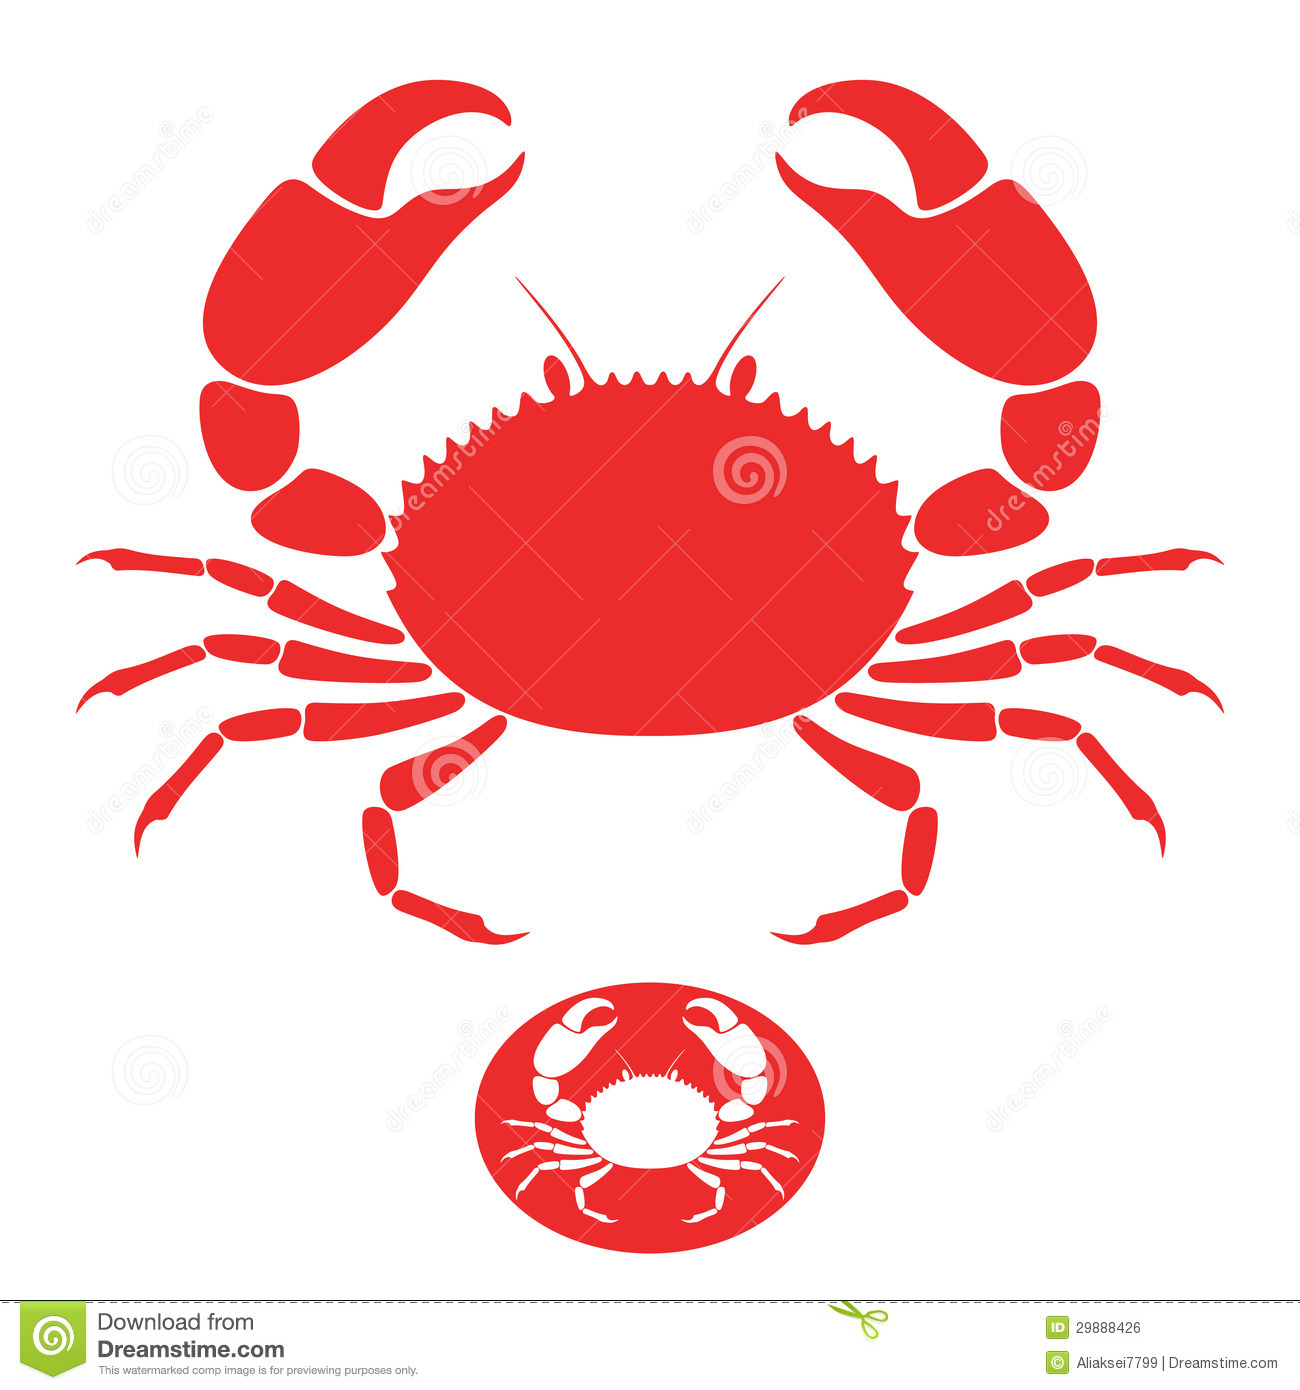 Crab. Sign. Vector illustration (EPS 10) + alternate file (CDR 10).